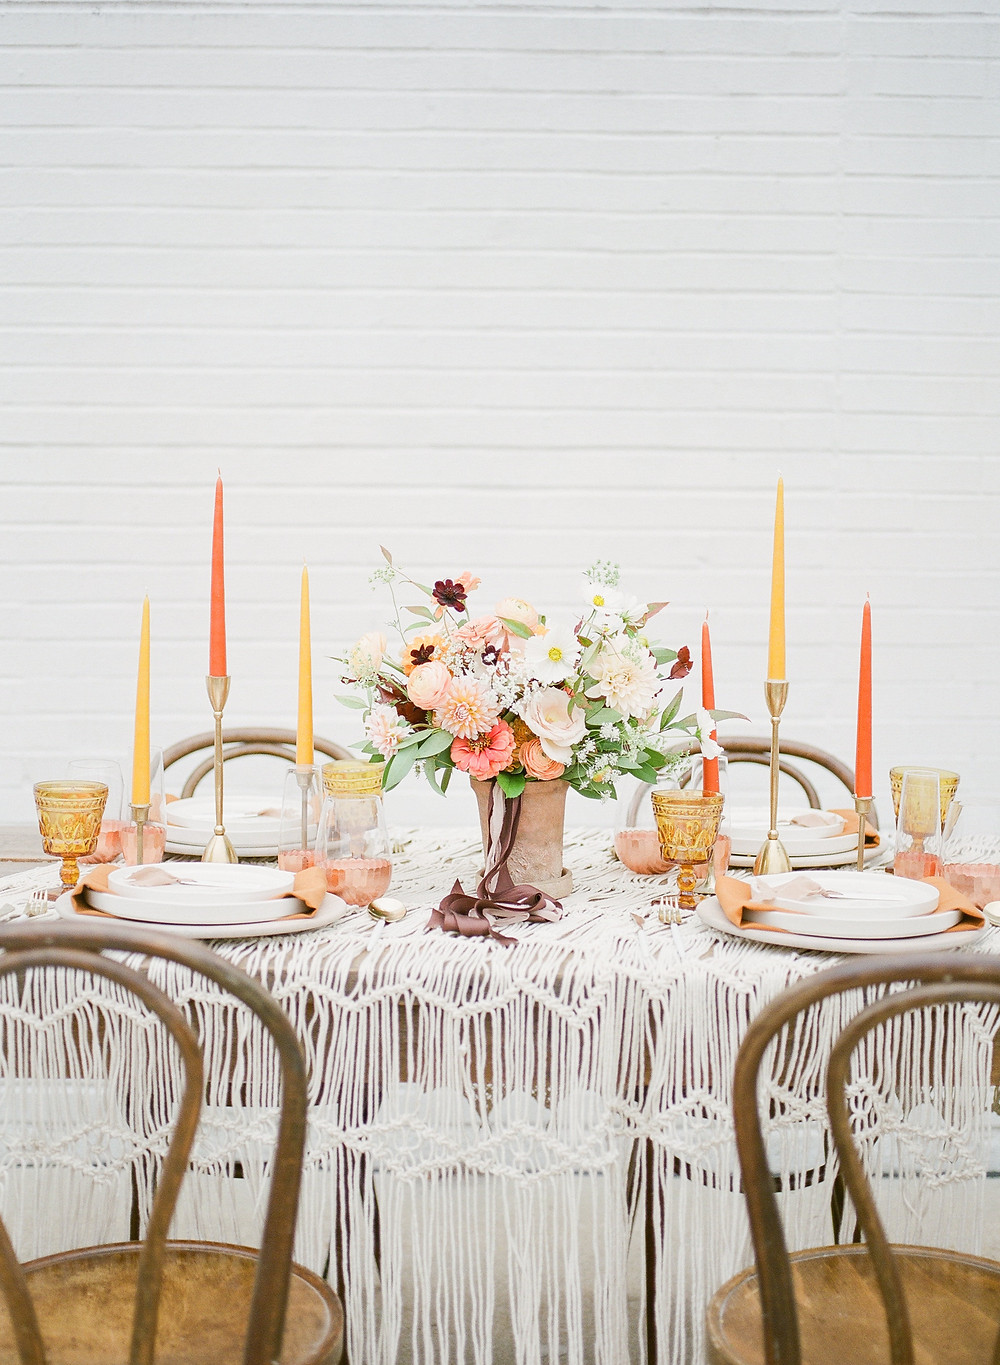 Boho wedding centerpiece by studio bloom iowa in terracotta pot with peach and brown summer flowers on a macramé table cloth